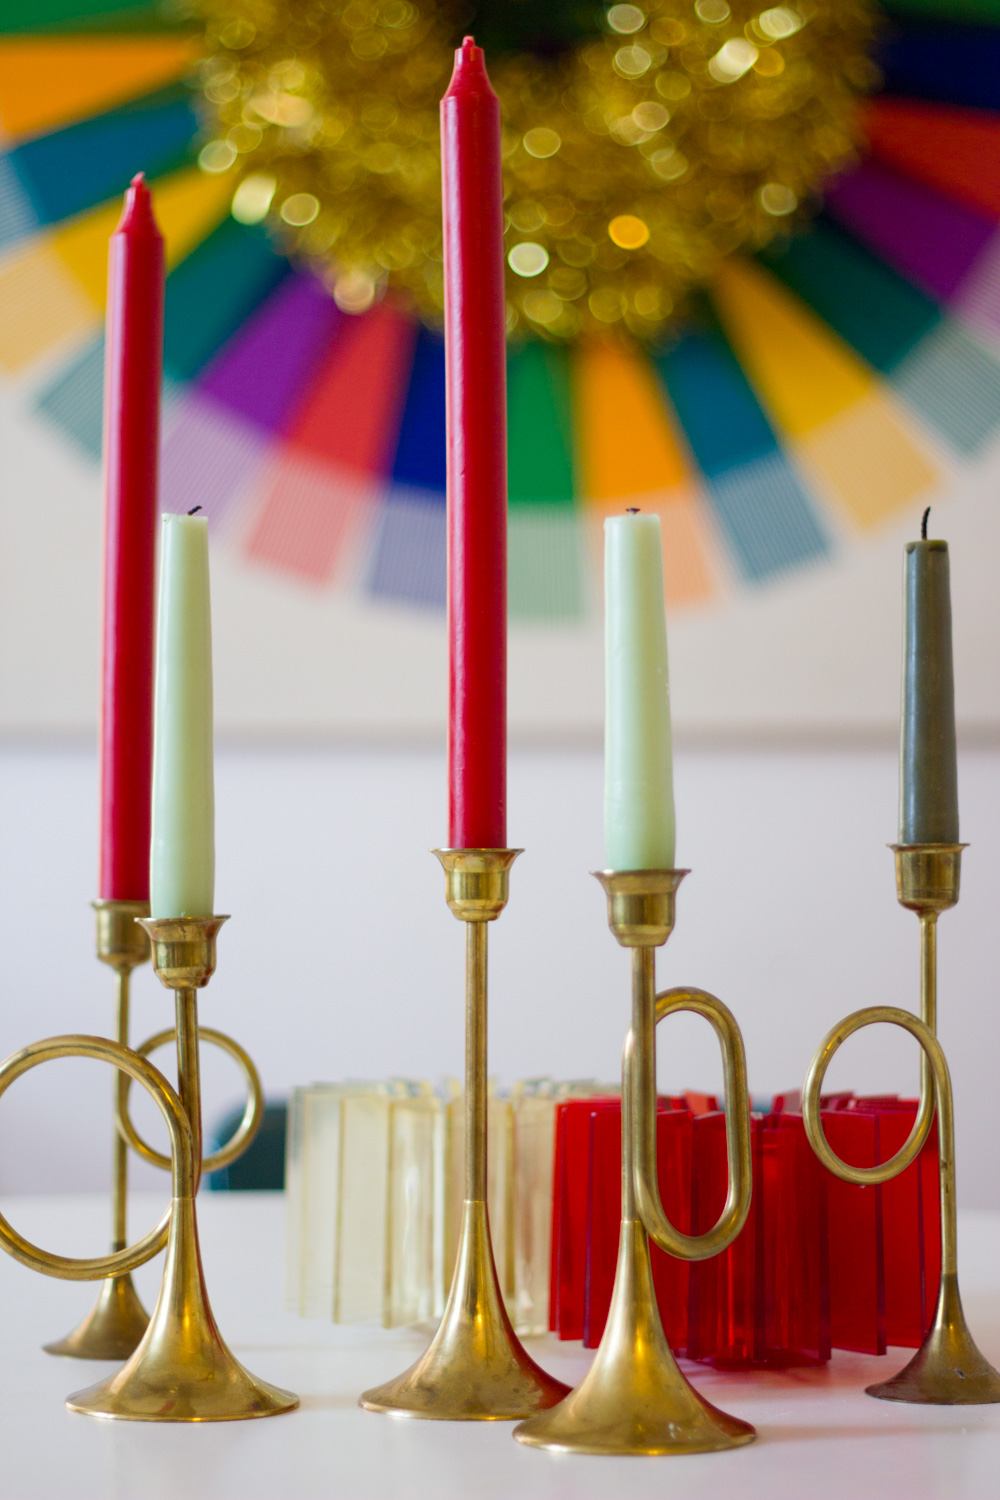 red and green taper candles in brass Christmas candleholders